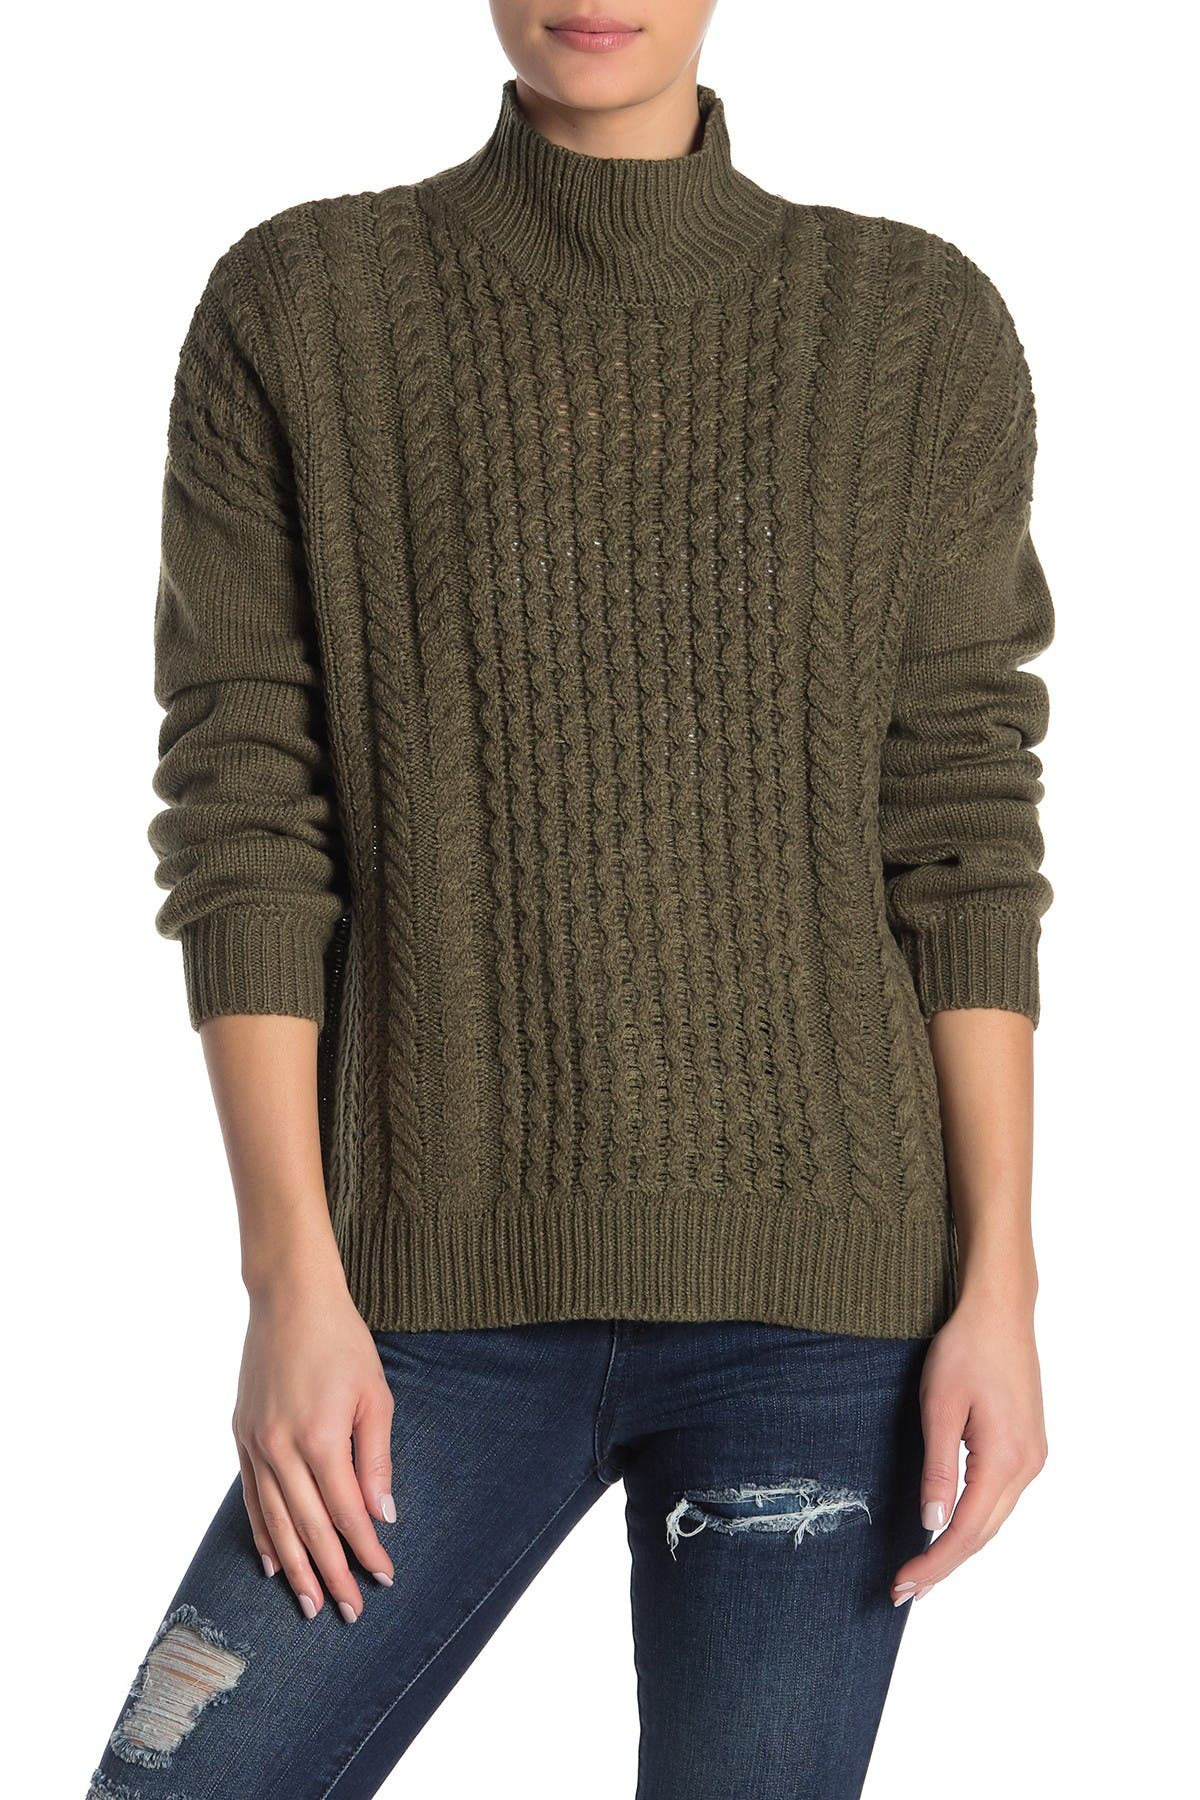 Image of William Rast Mila Mock Neck Cable Knit Sweater